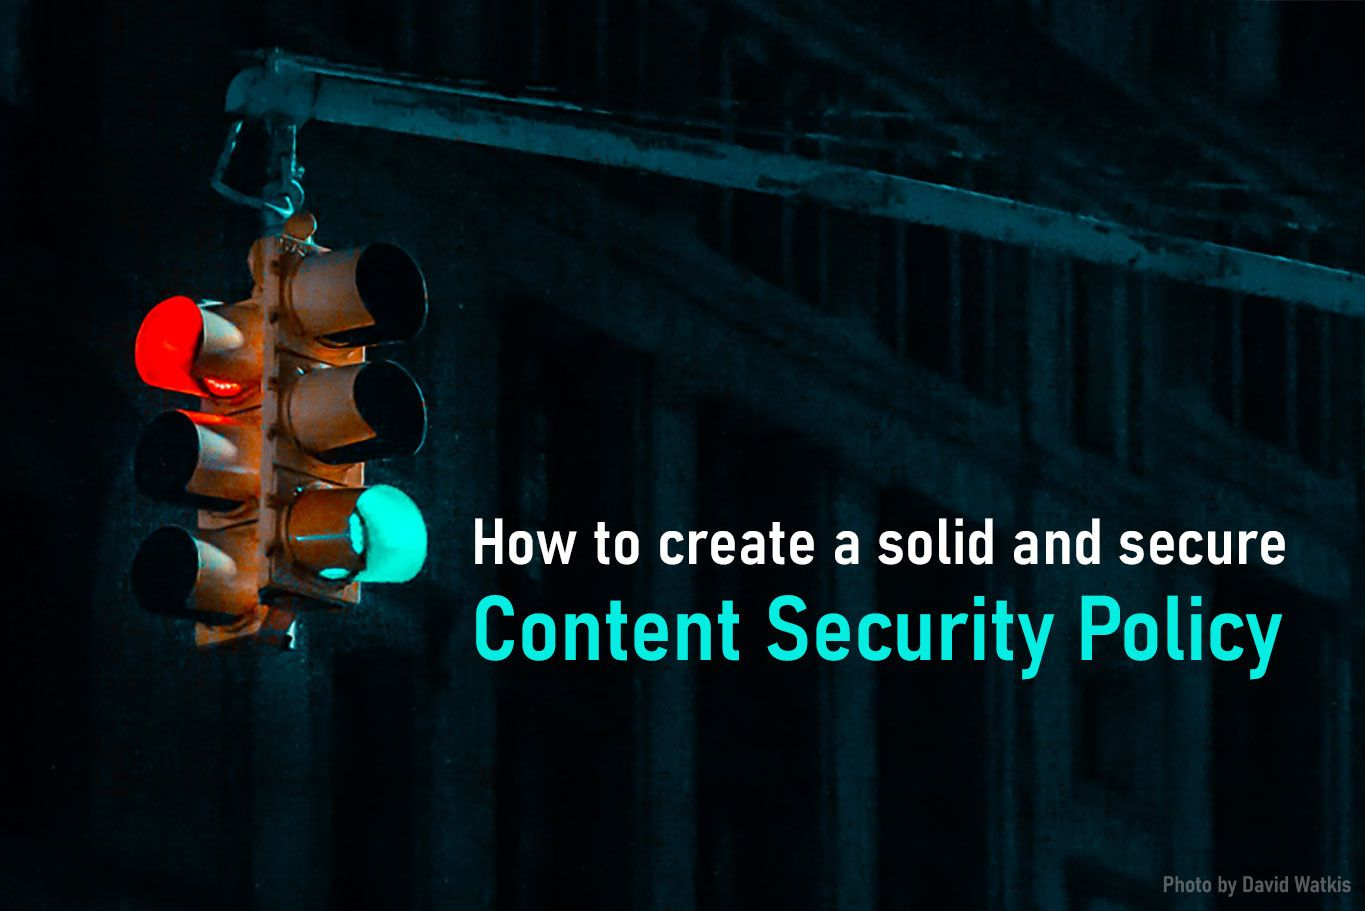 How to create a solid and secure Content Security Policy